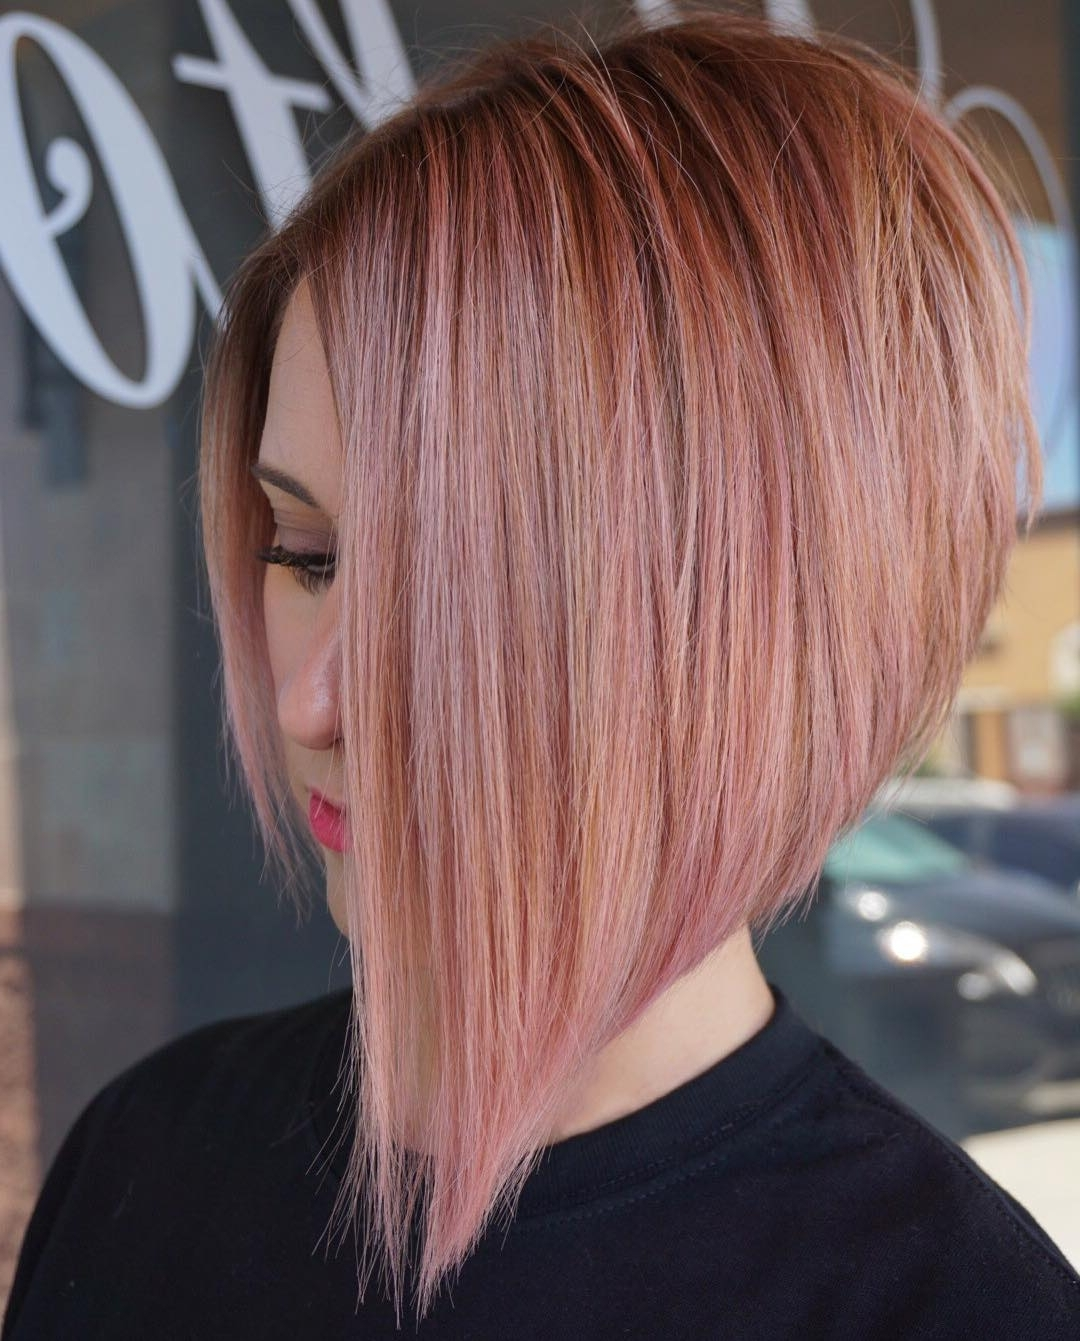 Well Known Pastel And Ash Pixie Hairstyles With Fused Layers With 10 Flattering Short Straight Hairstyles, 2018 Latest Short Haircut (View 19 of 20)